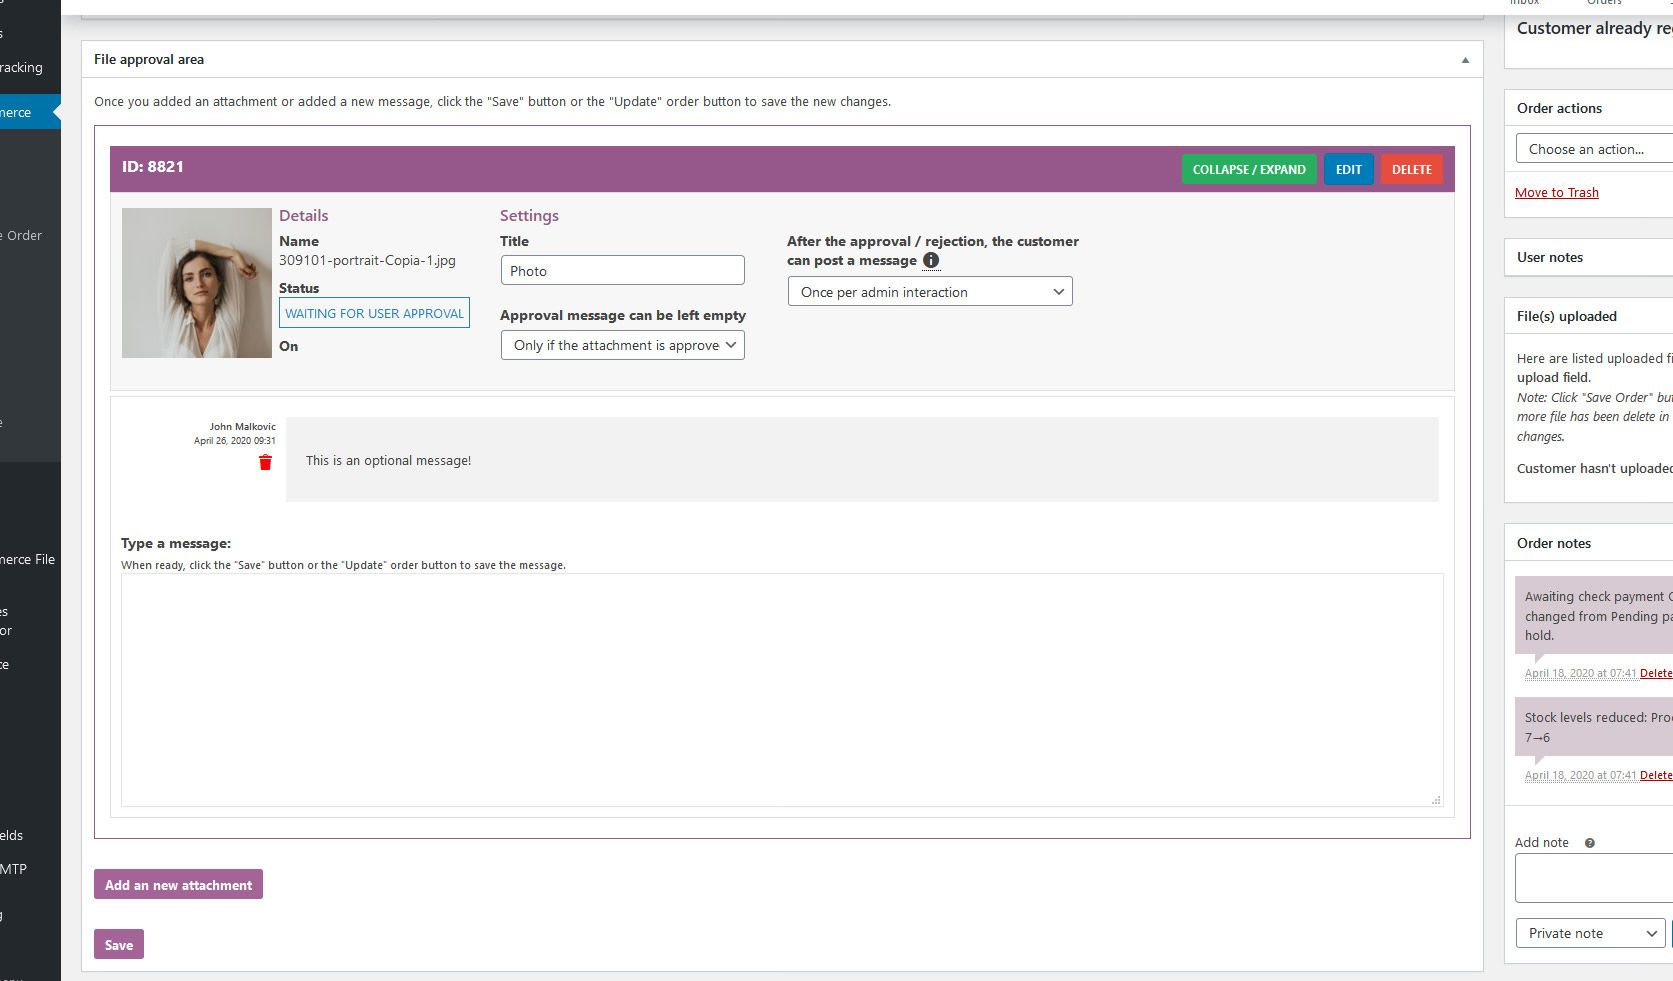 WooCommerce File Approval #Sponsored #WooCommerce, #PAID, #File, #Approval   Woocommerce, Coding, This or that questions